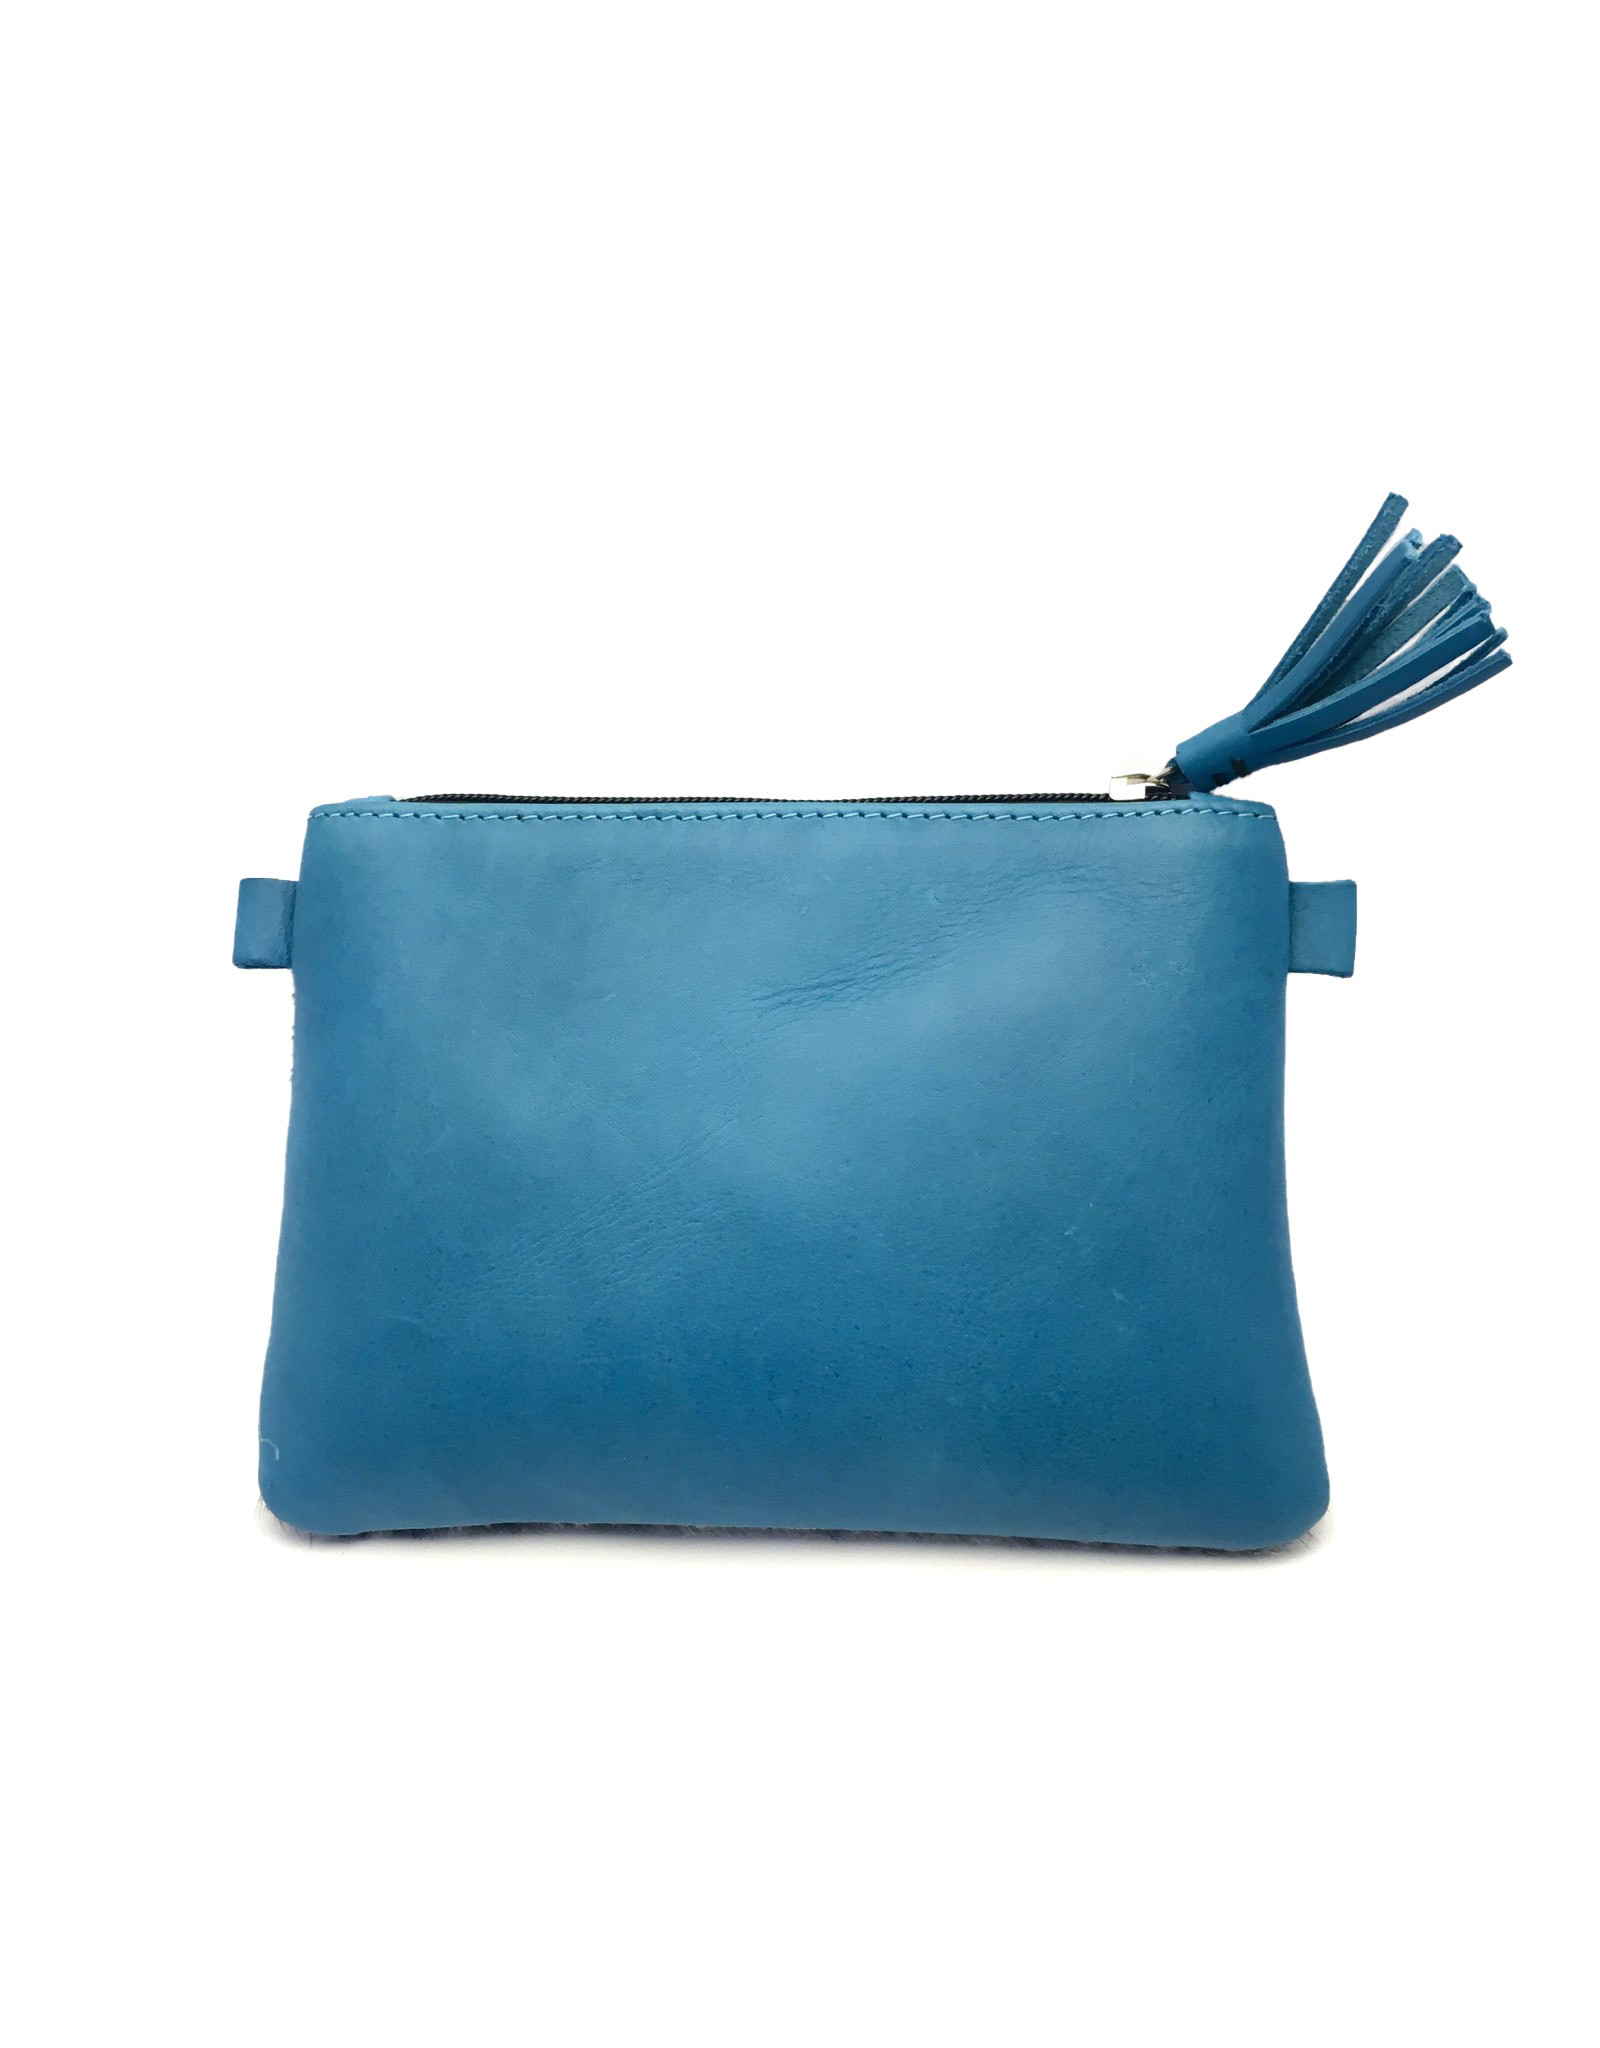 Maisha.Style Jambo purse - grey cow hide purse with turquoise leather